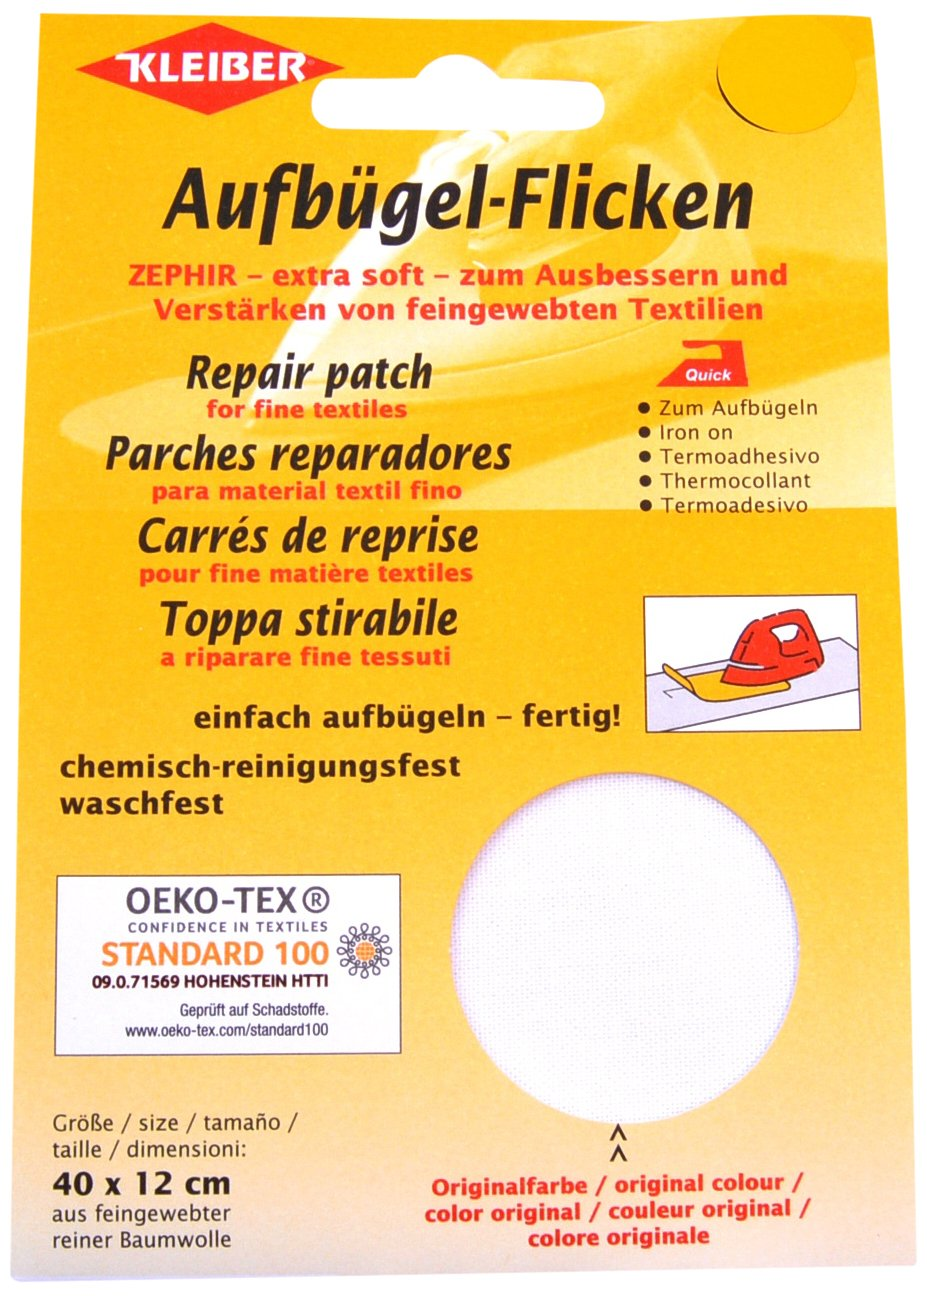 Kleiber 40 x 12 cm Extra Soft Cotton Iron-On Repair Patch, White by Kleiber   B0074OC8V4